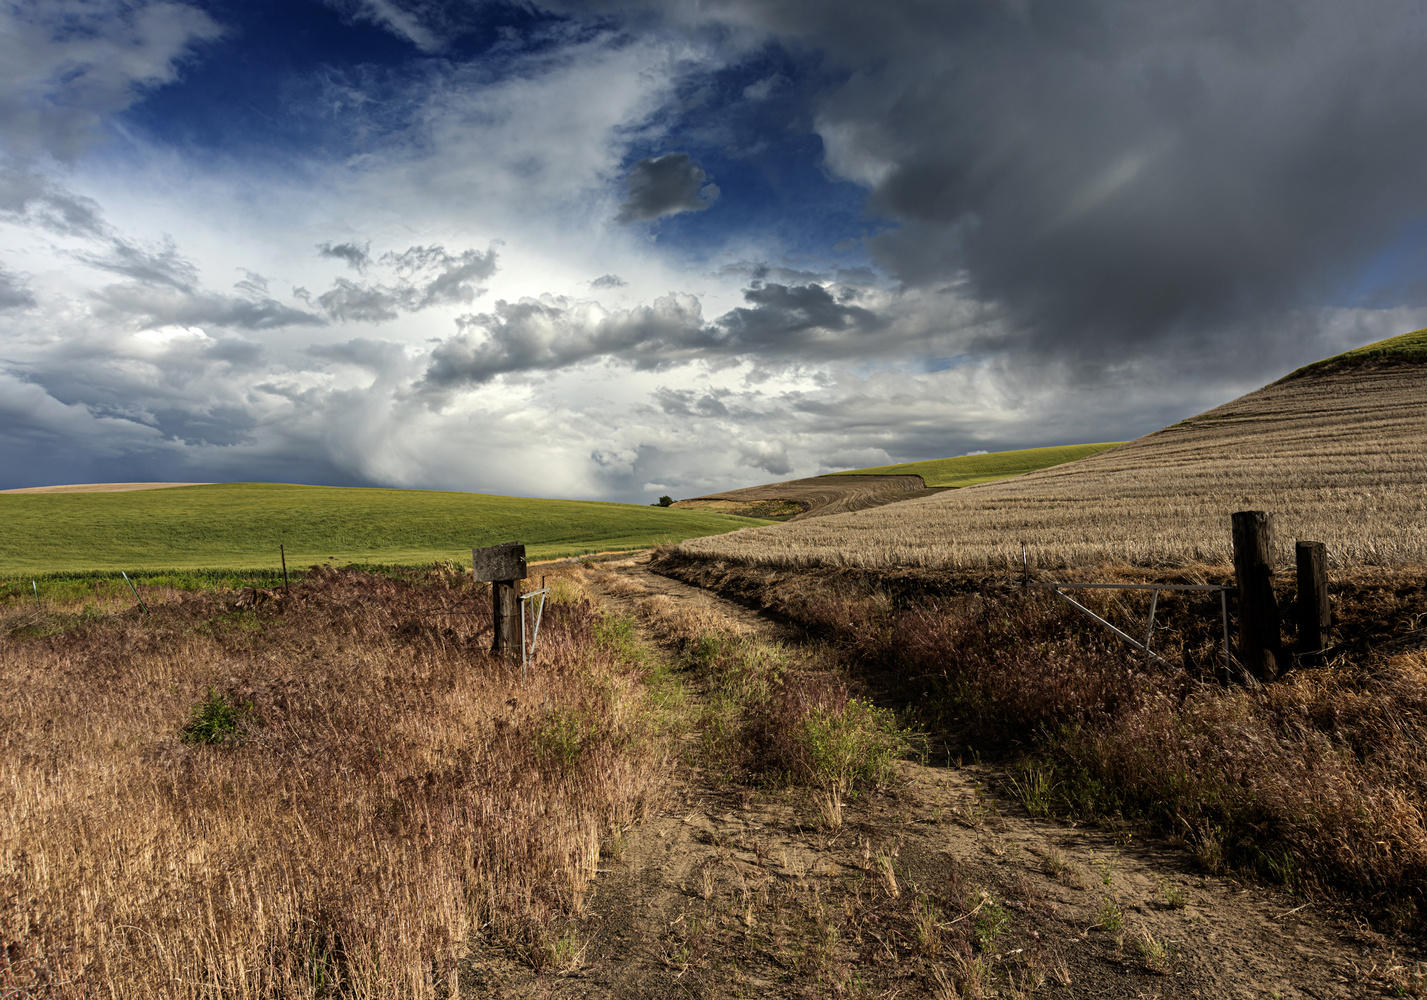 Farm Lane in Eastern Oregon Surrounded by Wheat Fields by Gary Quay